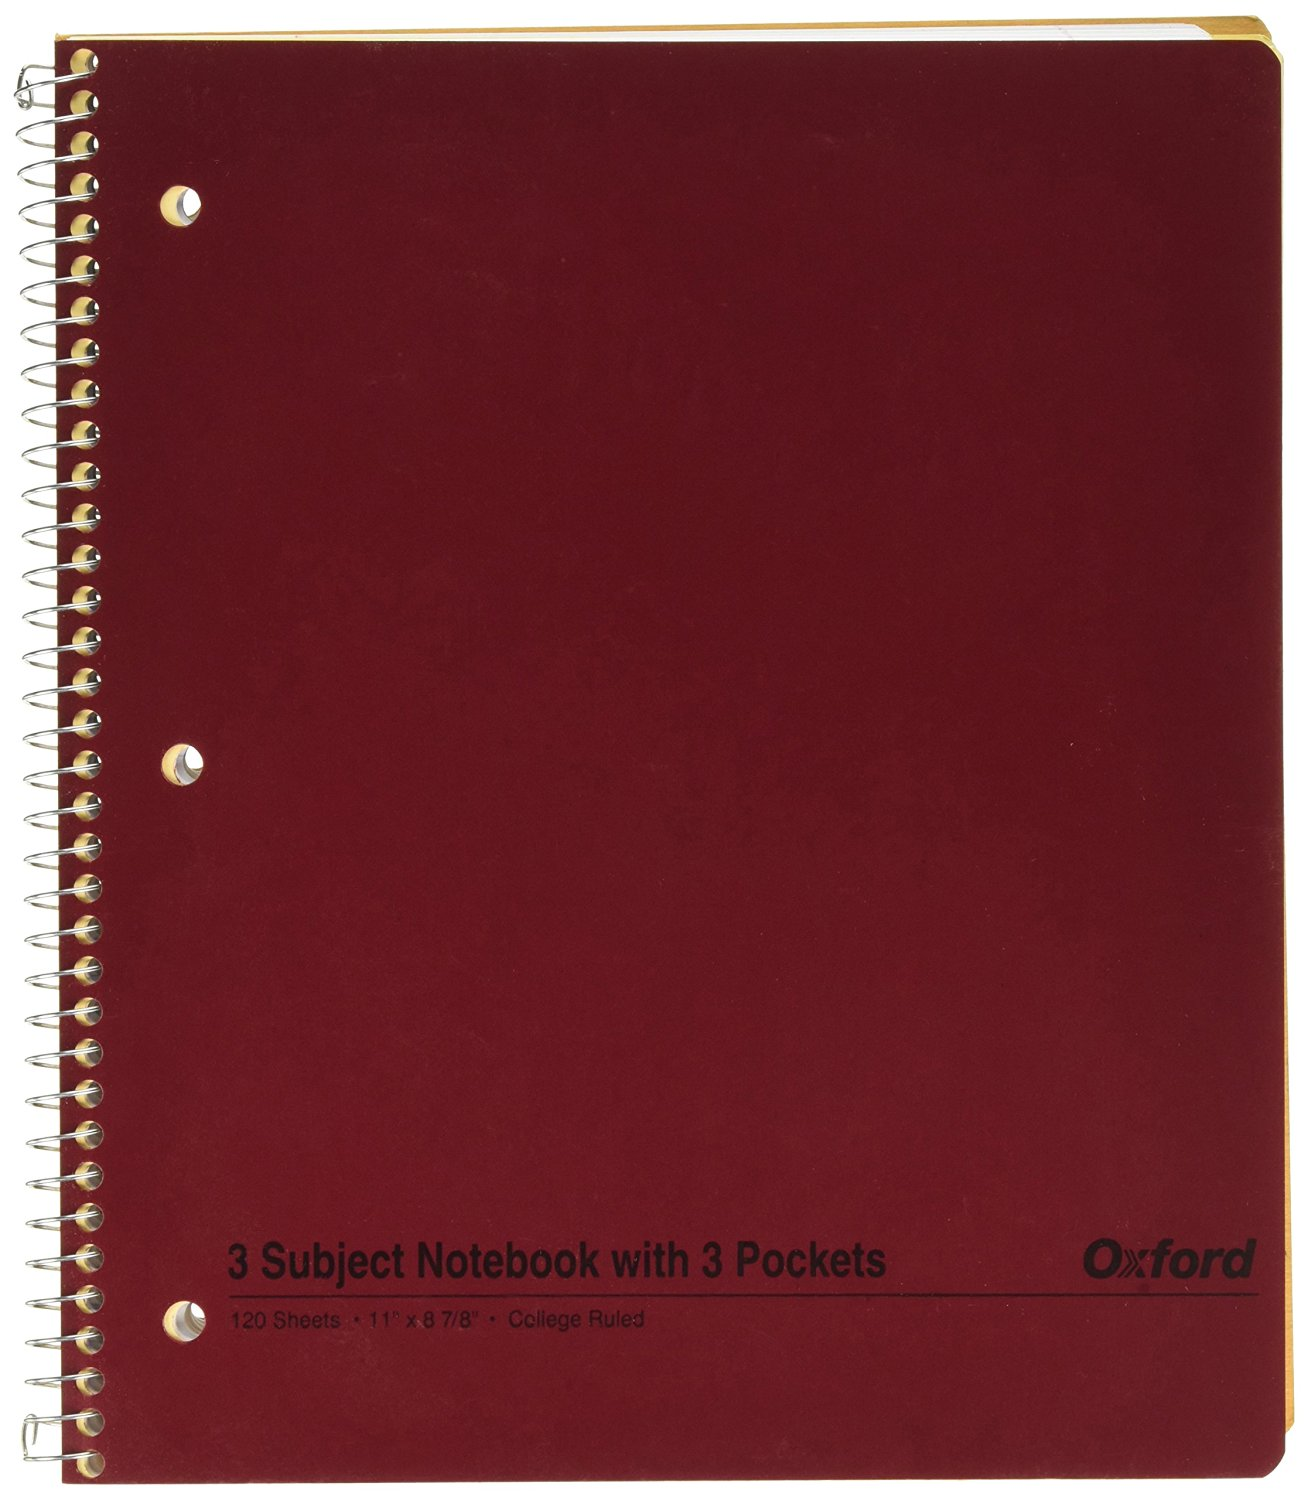 Ampad Single Wire Notebook, Size 11 x 8-7/8, 3 Subject, 3 Pocket, Assorted Colors (Red, Blue, Purple, Garnet), College Ruled With Margin Line, 120 Sheets Per Notebook (25-425)